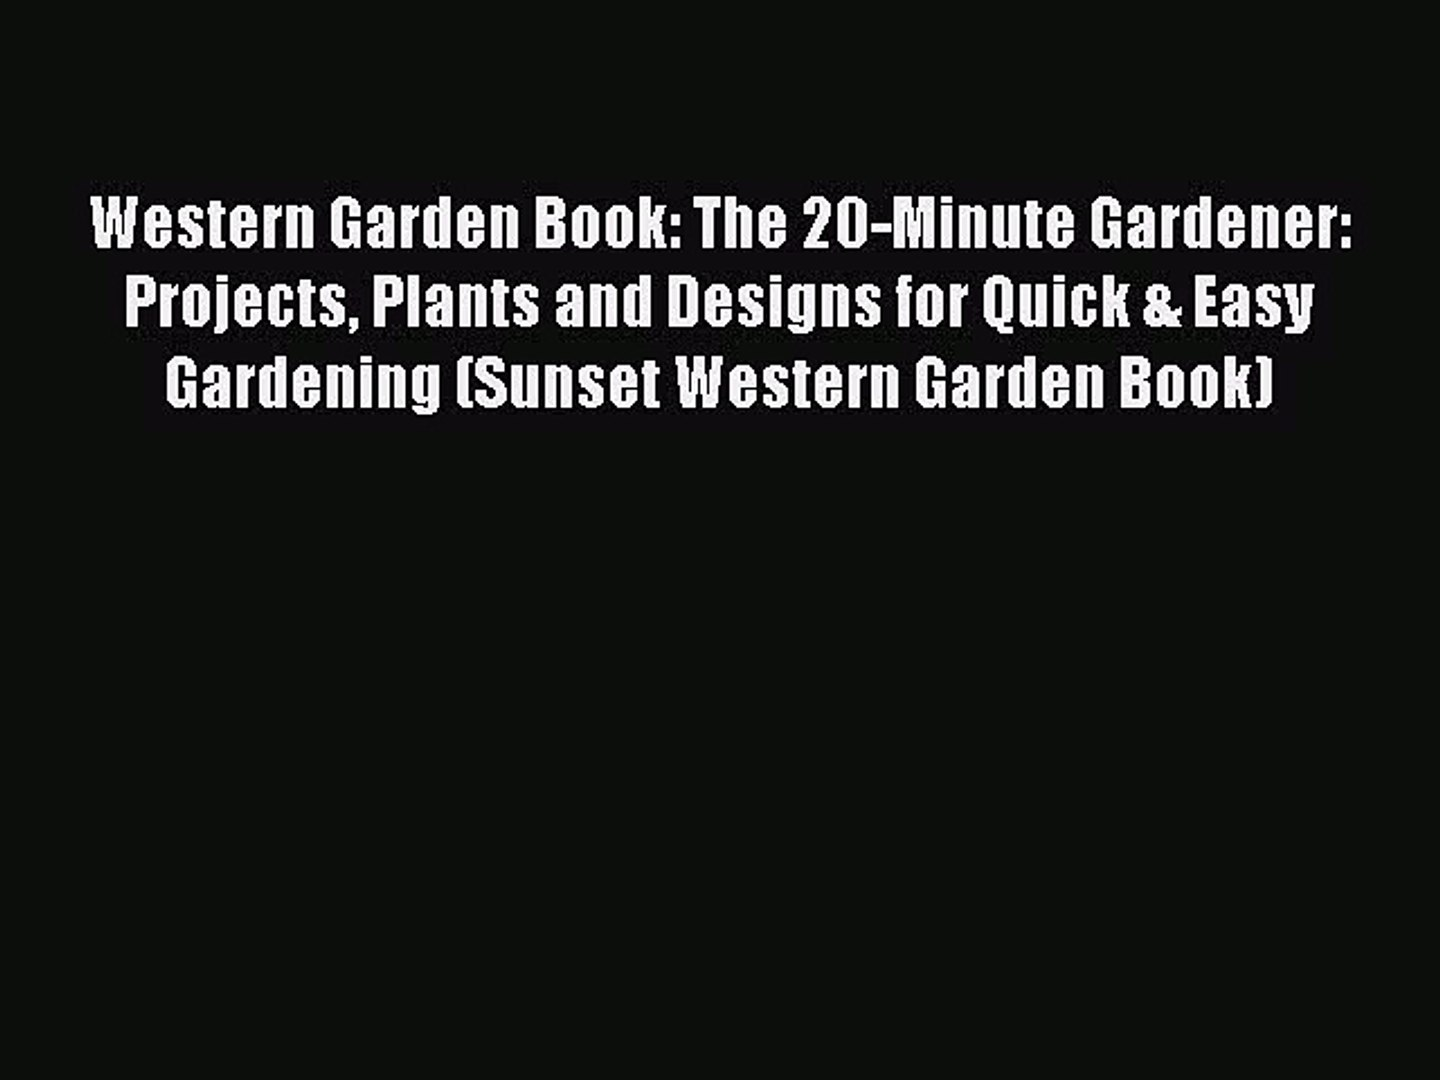 Read Western Garden Book: The 20-Minute Gardener: Projects Plants and Designs for Quick & Easy